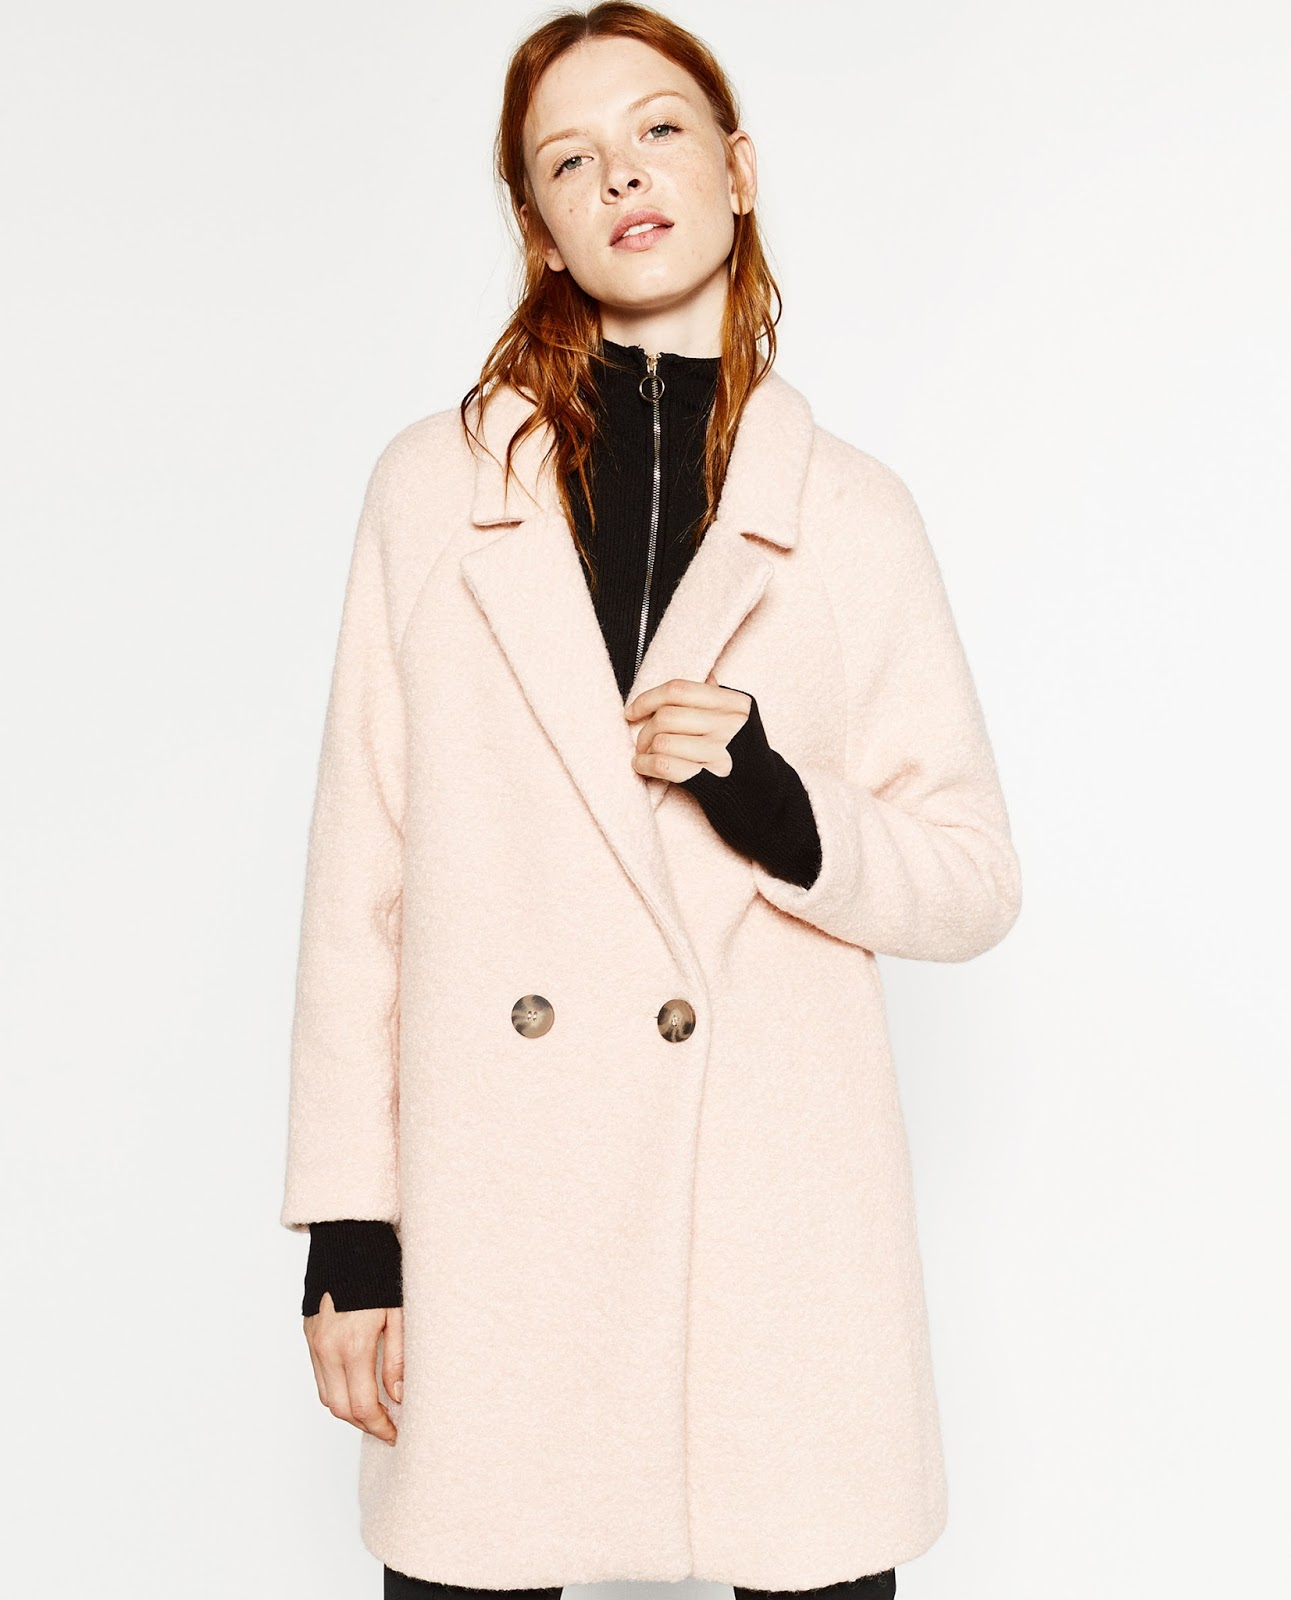 Zara blush coat